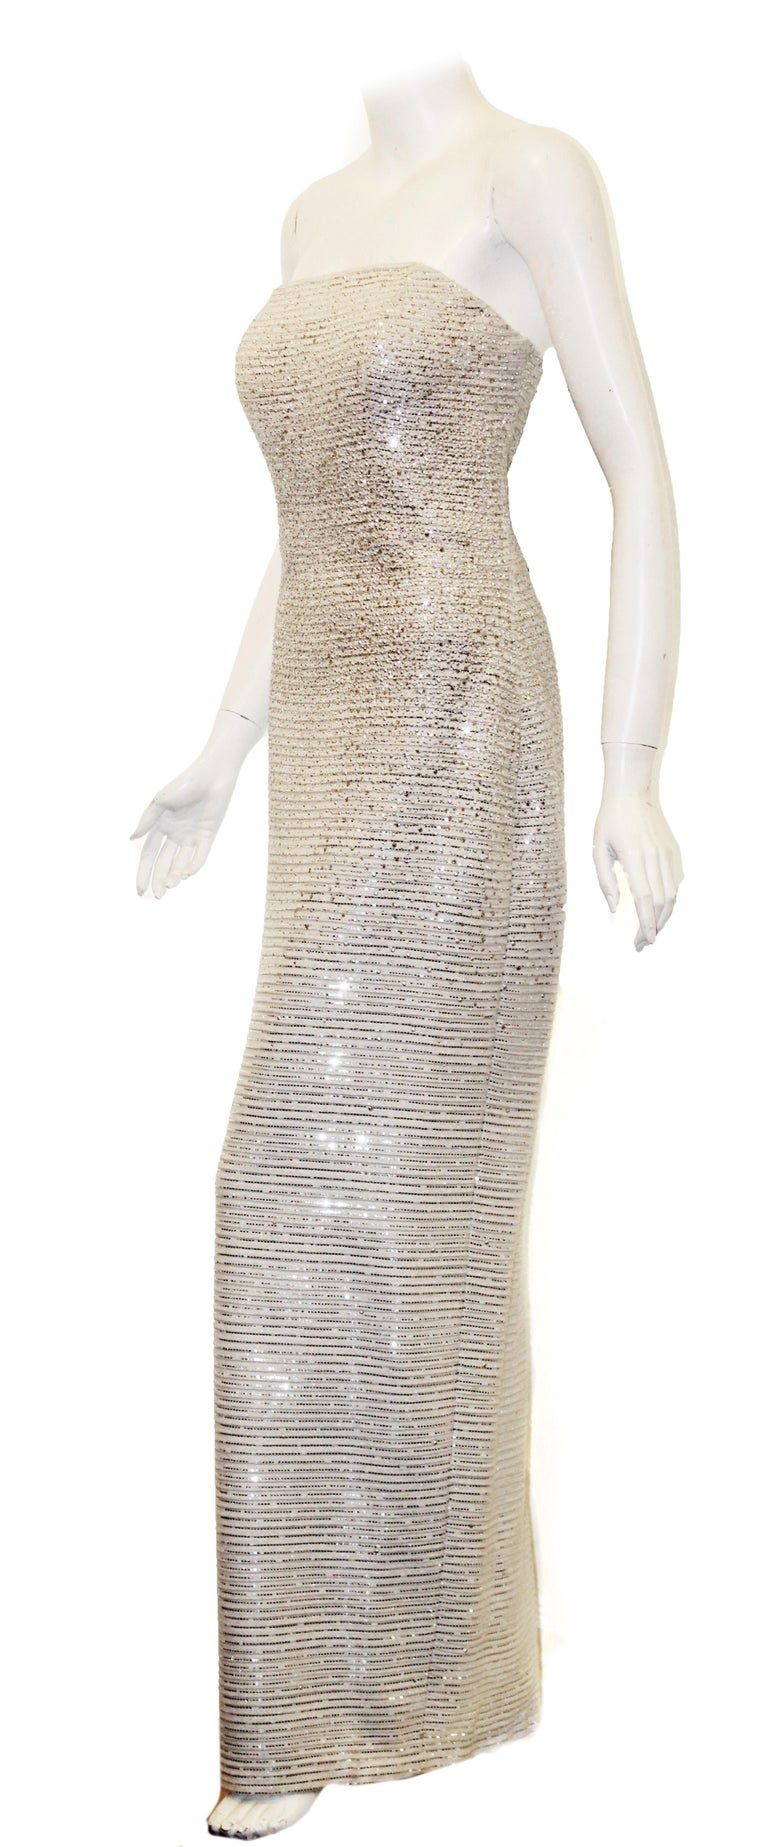 St. John white lattice knit gown interlaced with mini silver sequins and crystals throughout the dress creates a sparkling, signature sophisticated piece.  This strapless gown contains an attached internal bustier for added support.   Gown contains